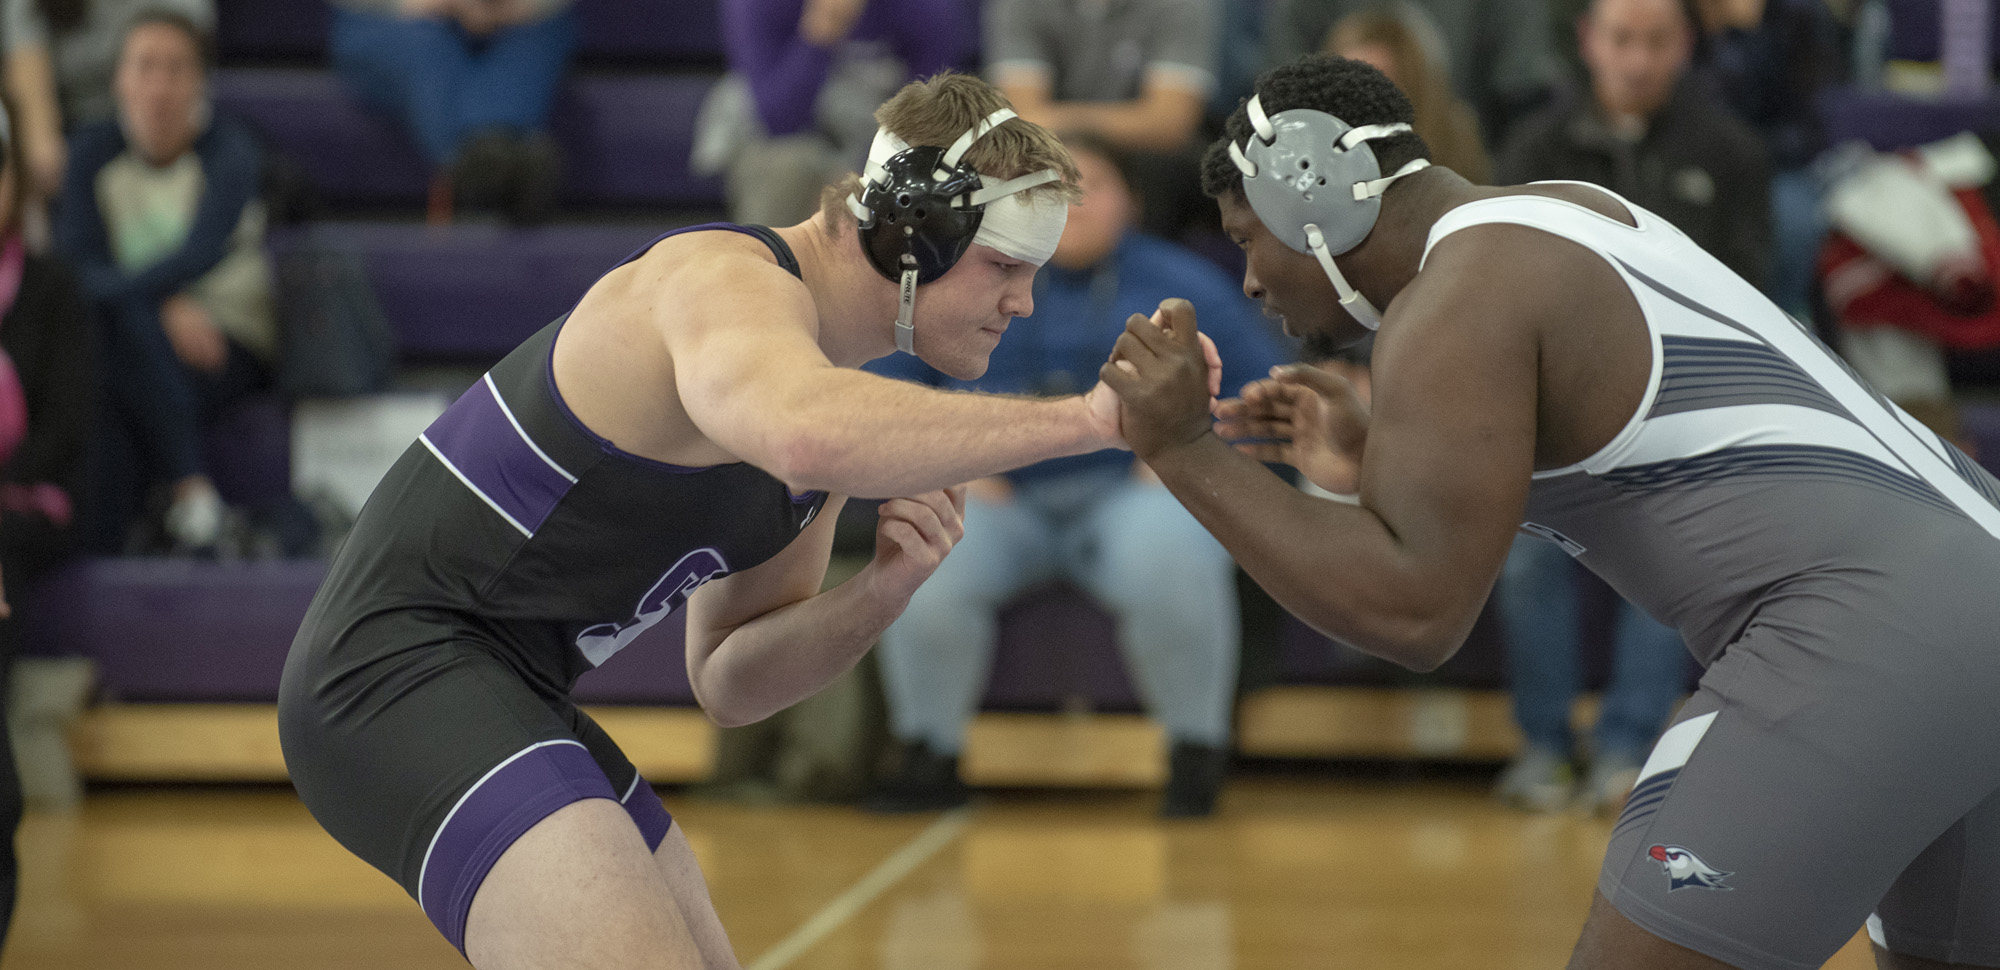 Keegan Connelly and the Royals will take on both King's and Wilkes on Saturday at Wilkes University in the Cross County Duals.